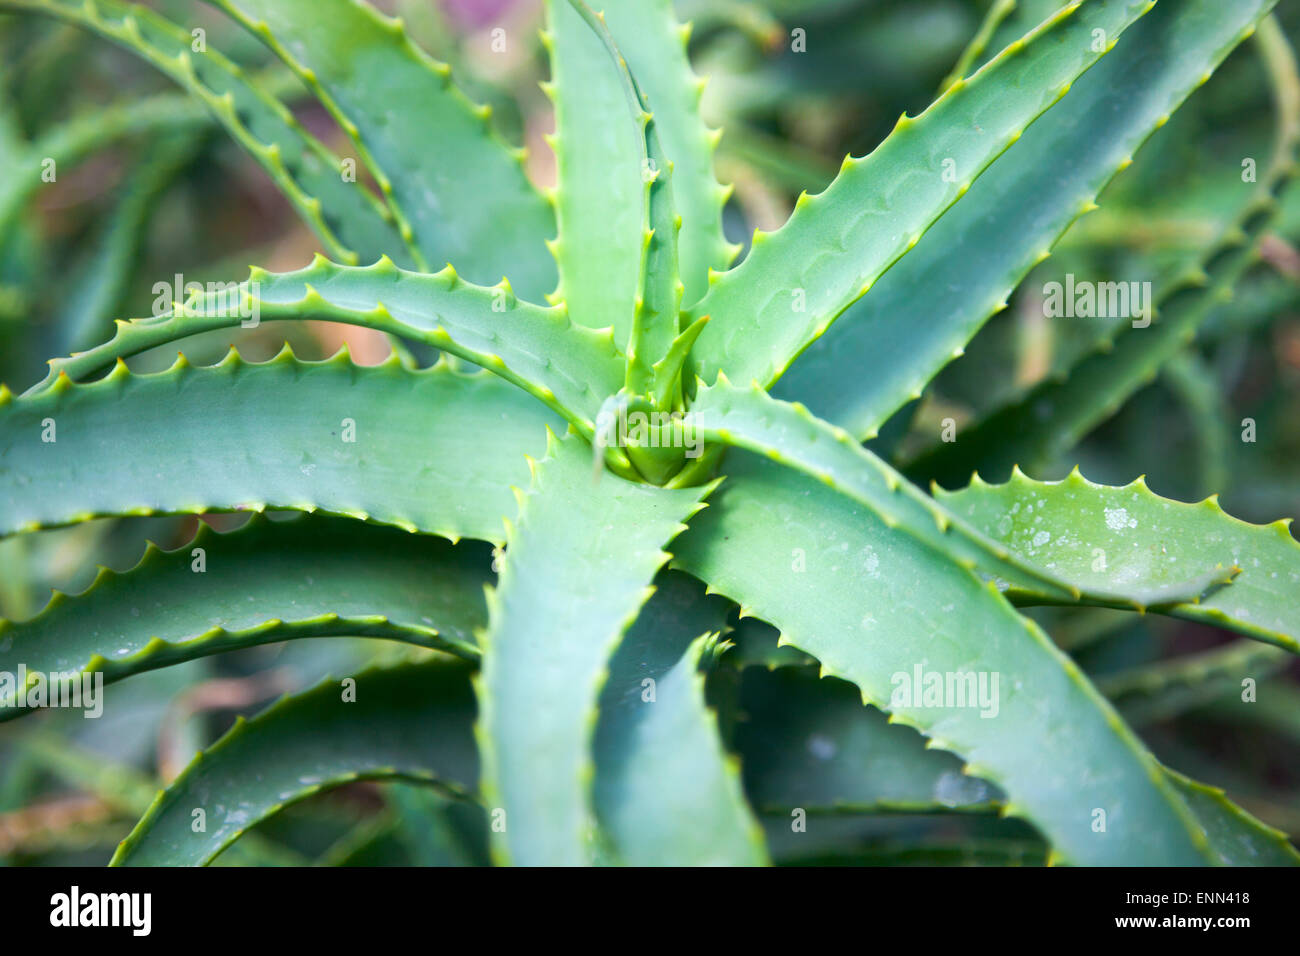 Aloe Vera And Cactus High Resolution Stock Photography And Images Alamy